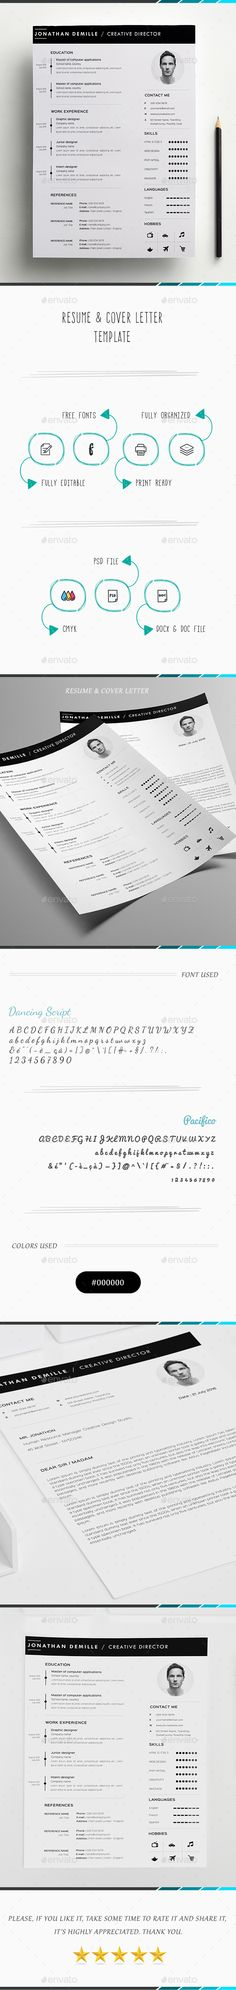 Resume Template PSD, AI, MS Word Resume Templates Pinterest - resume templates for it